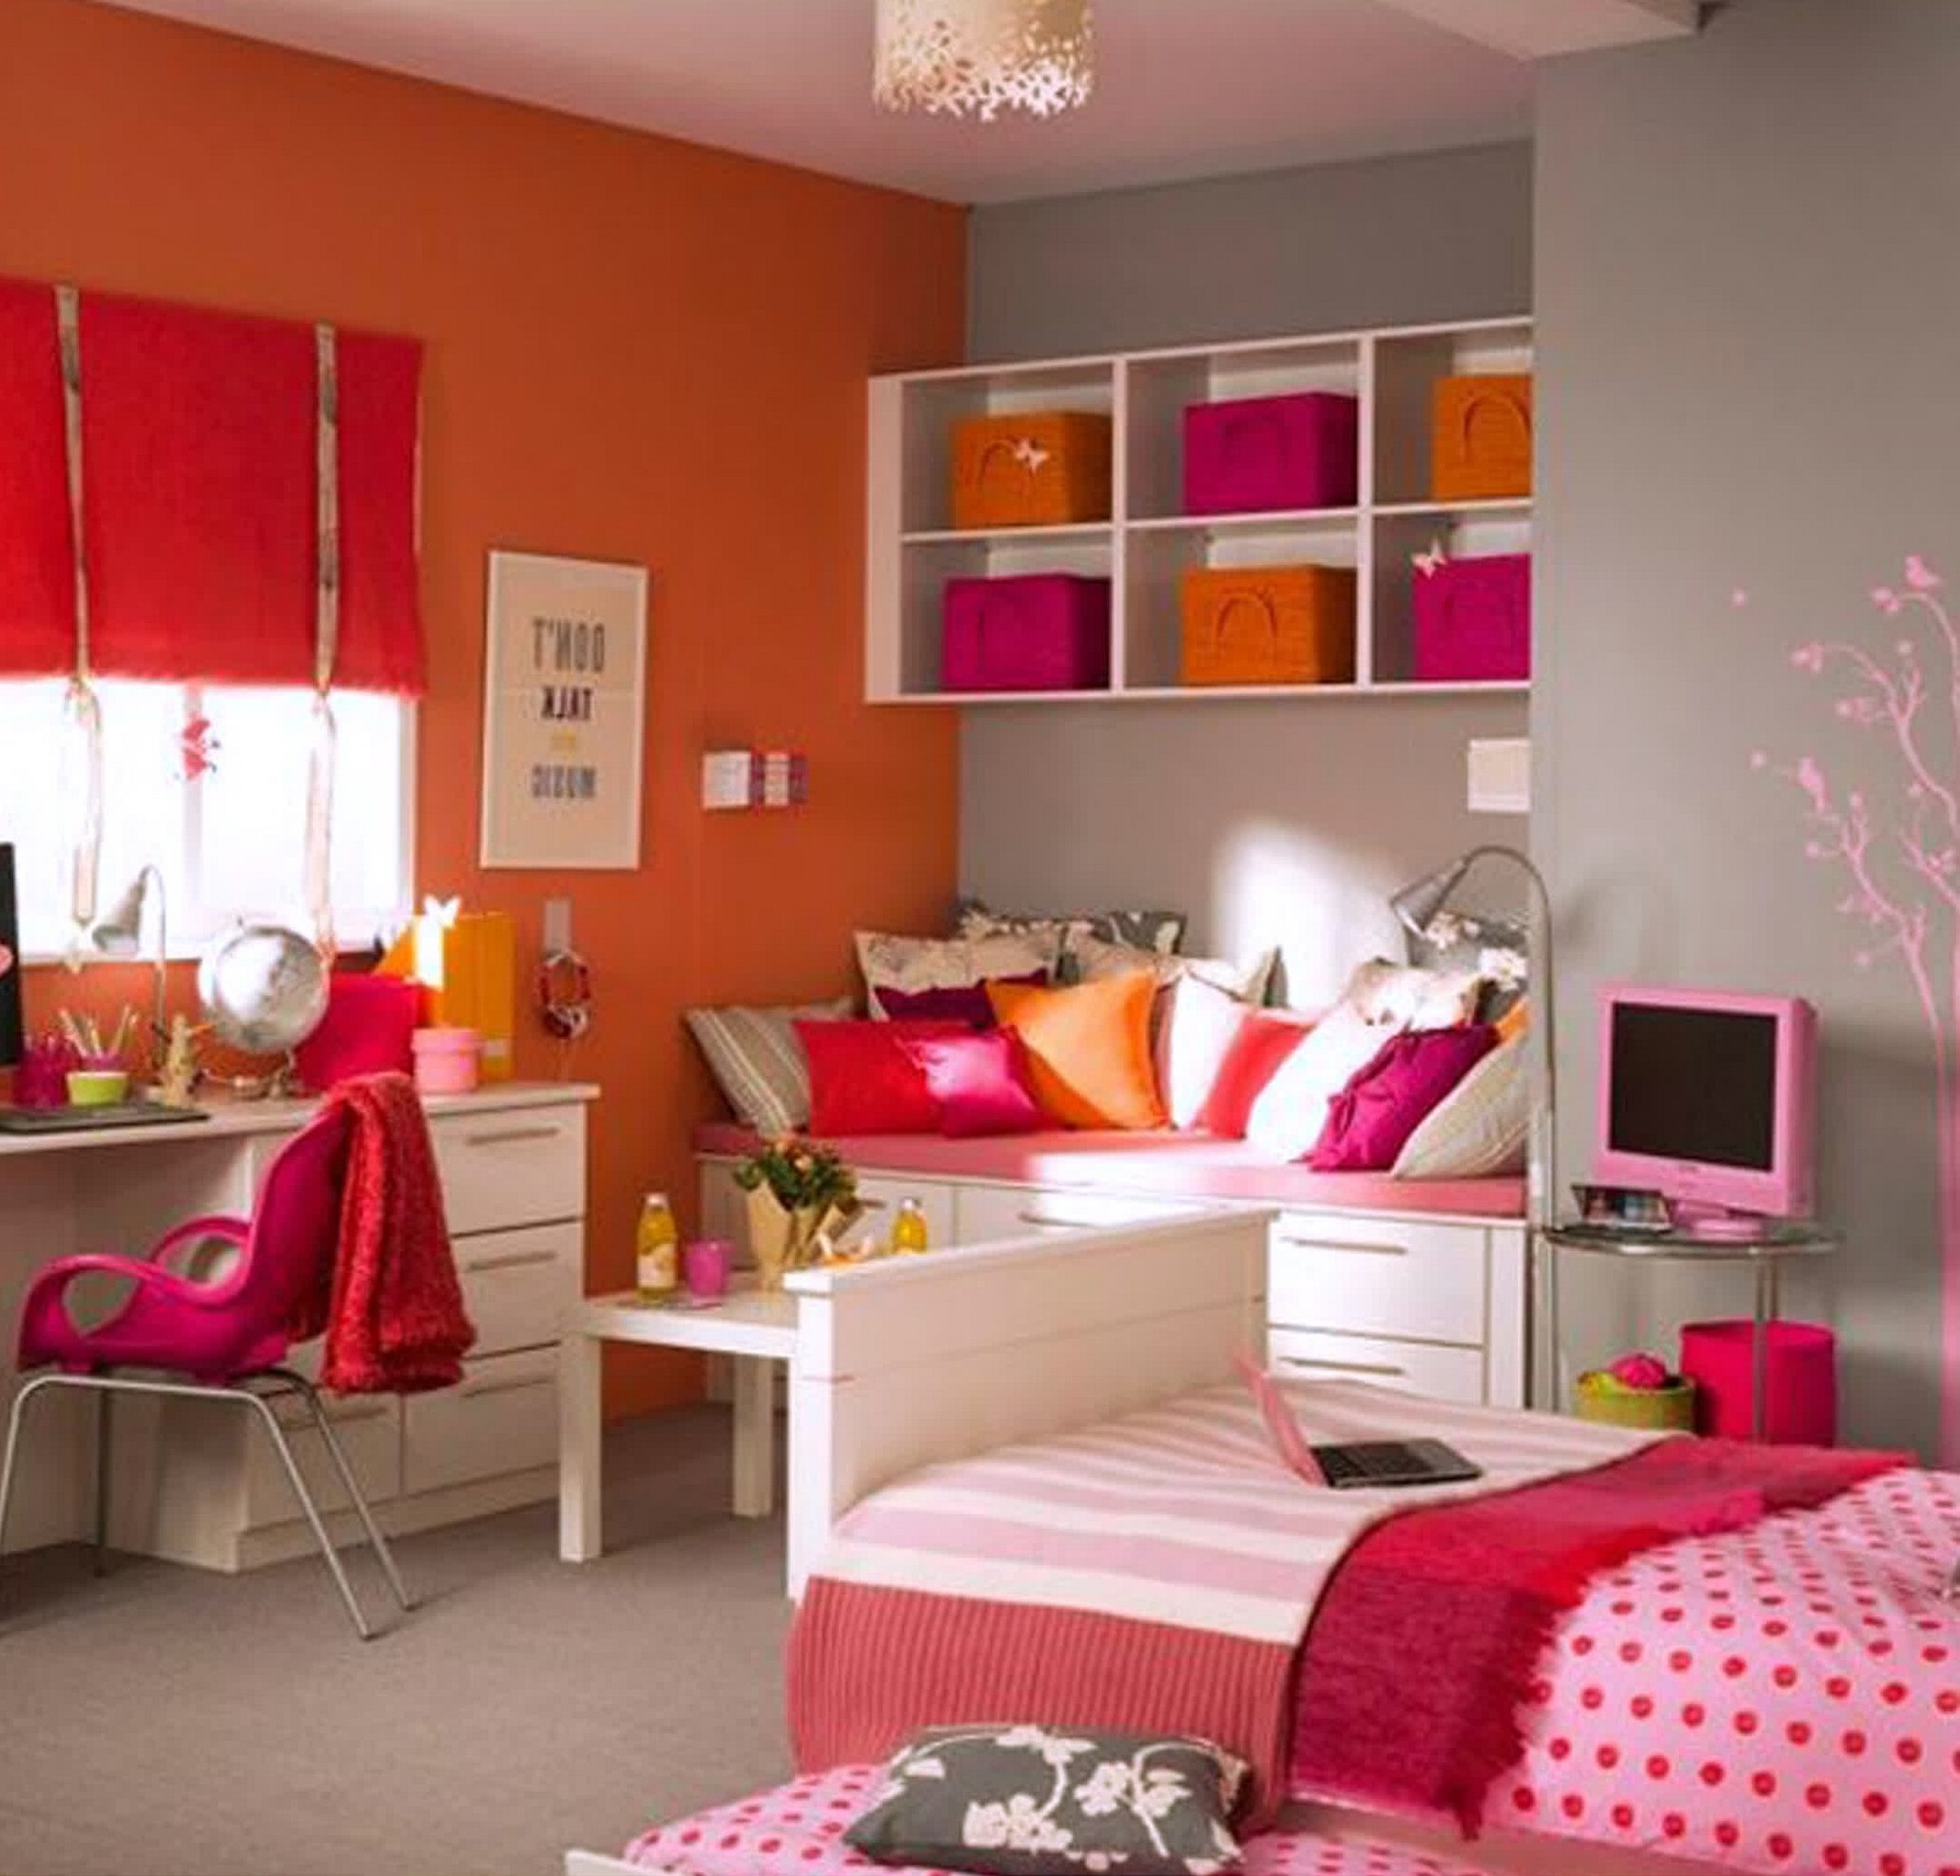 Icon Home Girl Room Ideas For Small Rooms Designs Apartments  Efficiently Arrange Final Touch Renovate Fresh